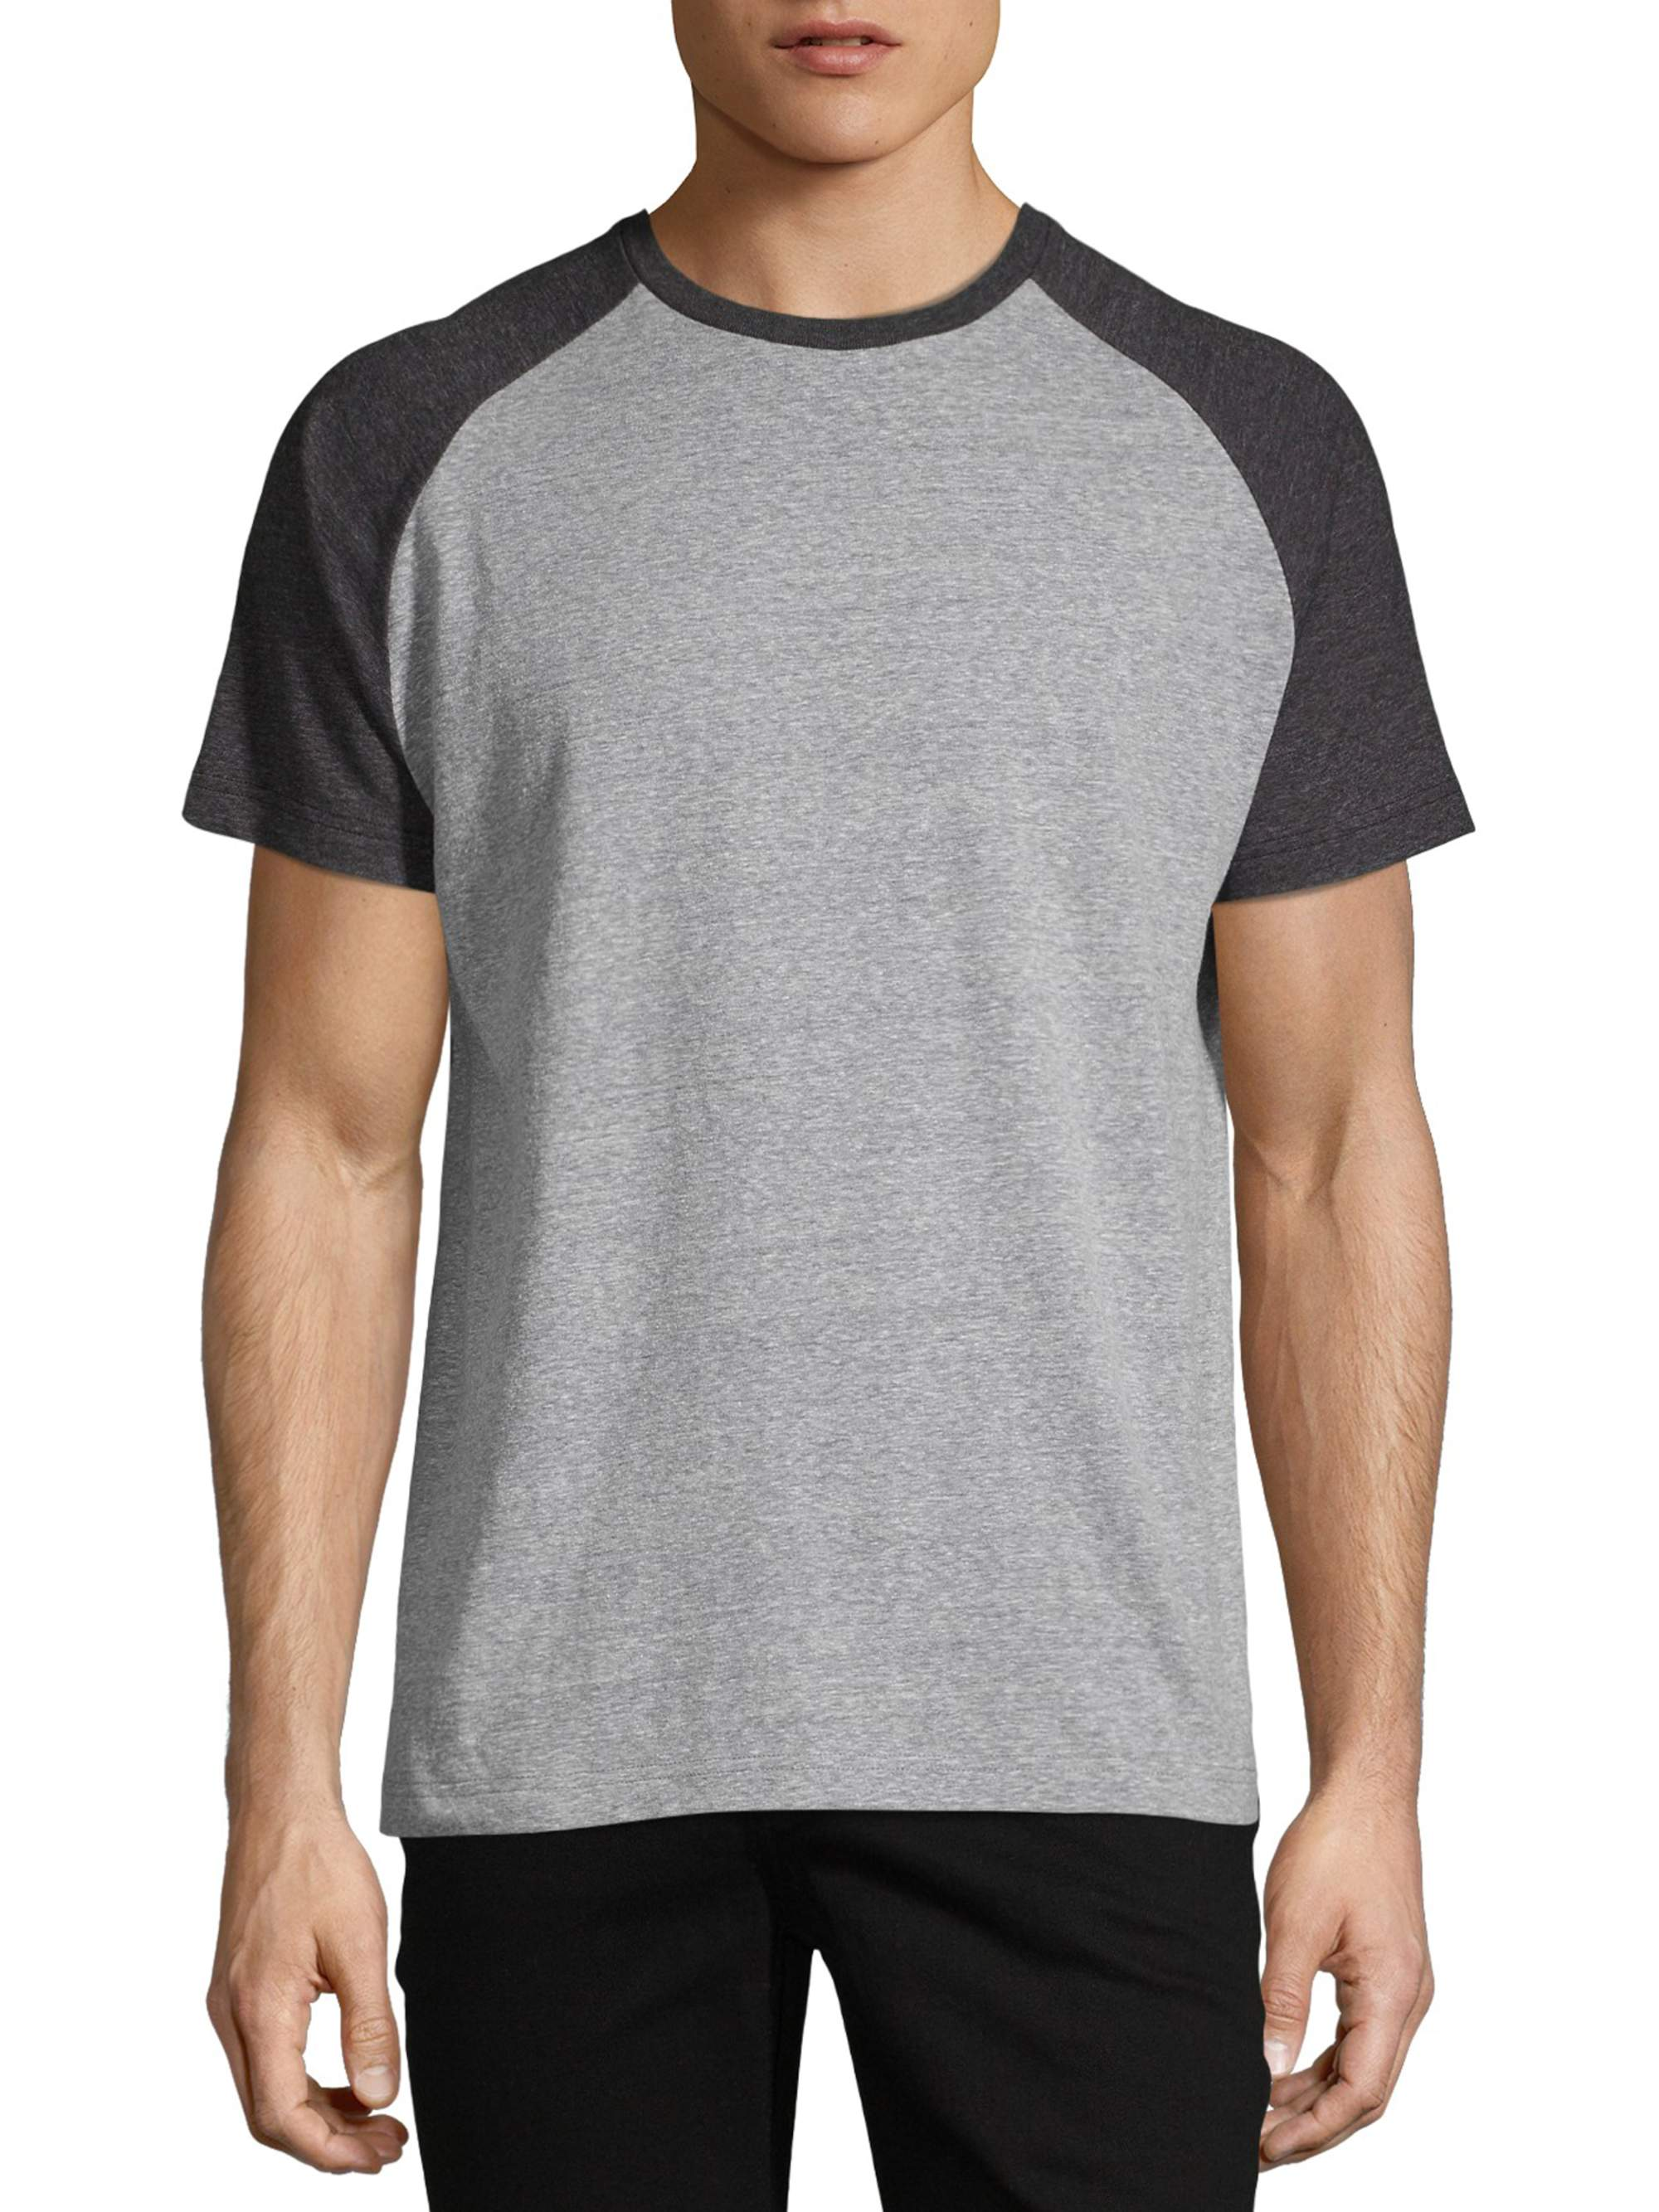 Normal Is Boring Charcoal Grey Adult T-Shirt